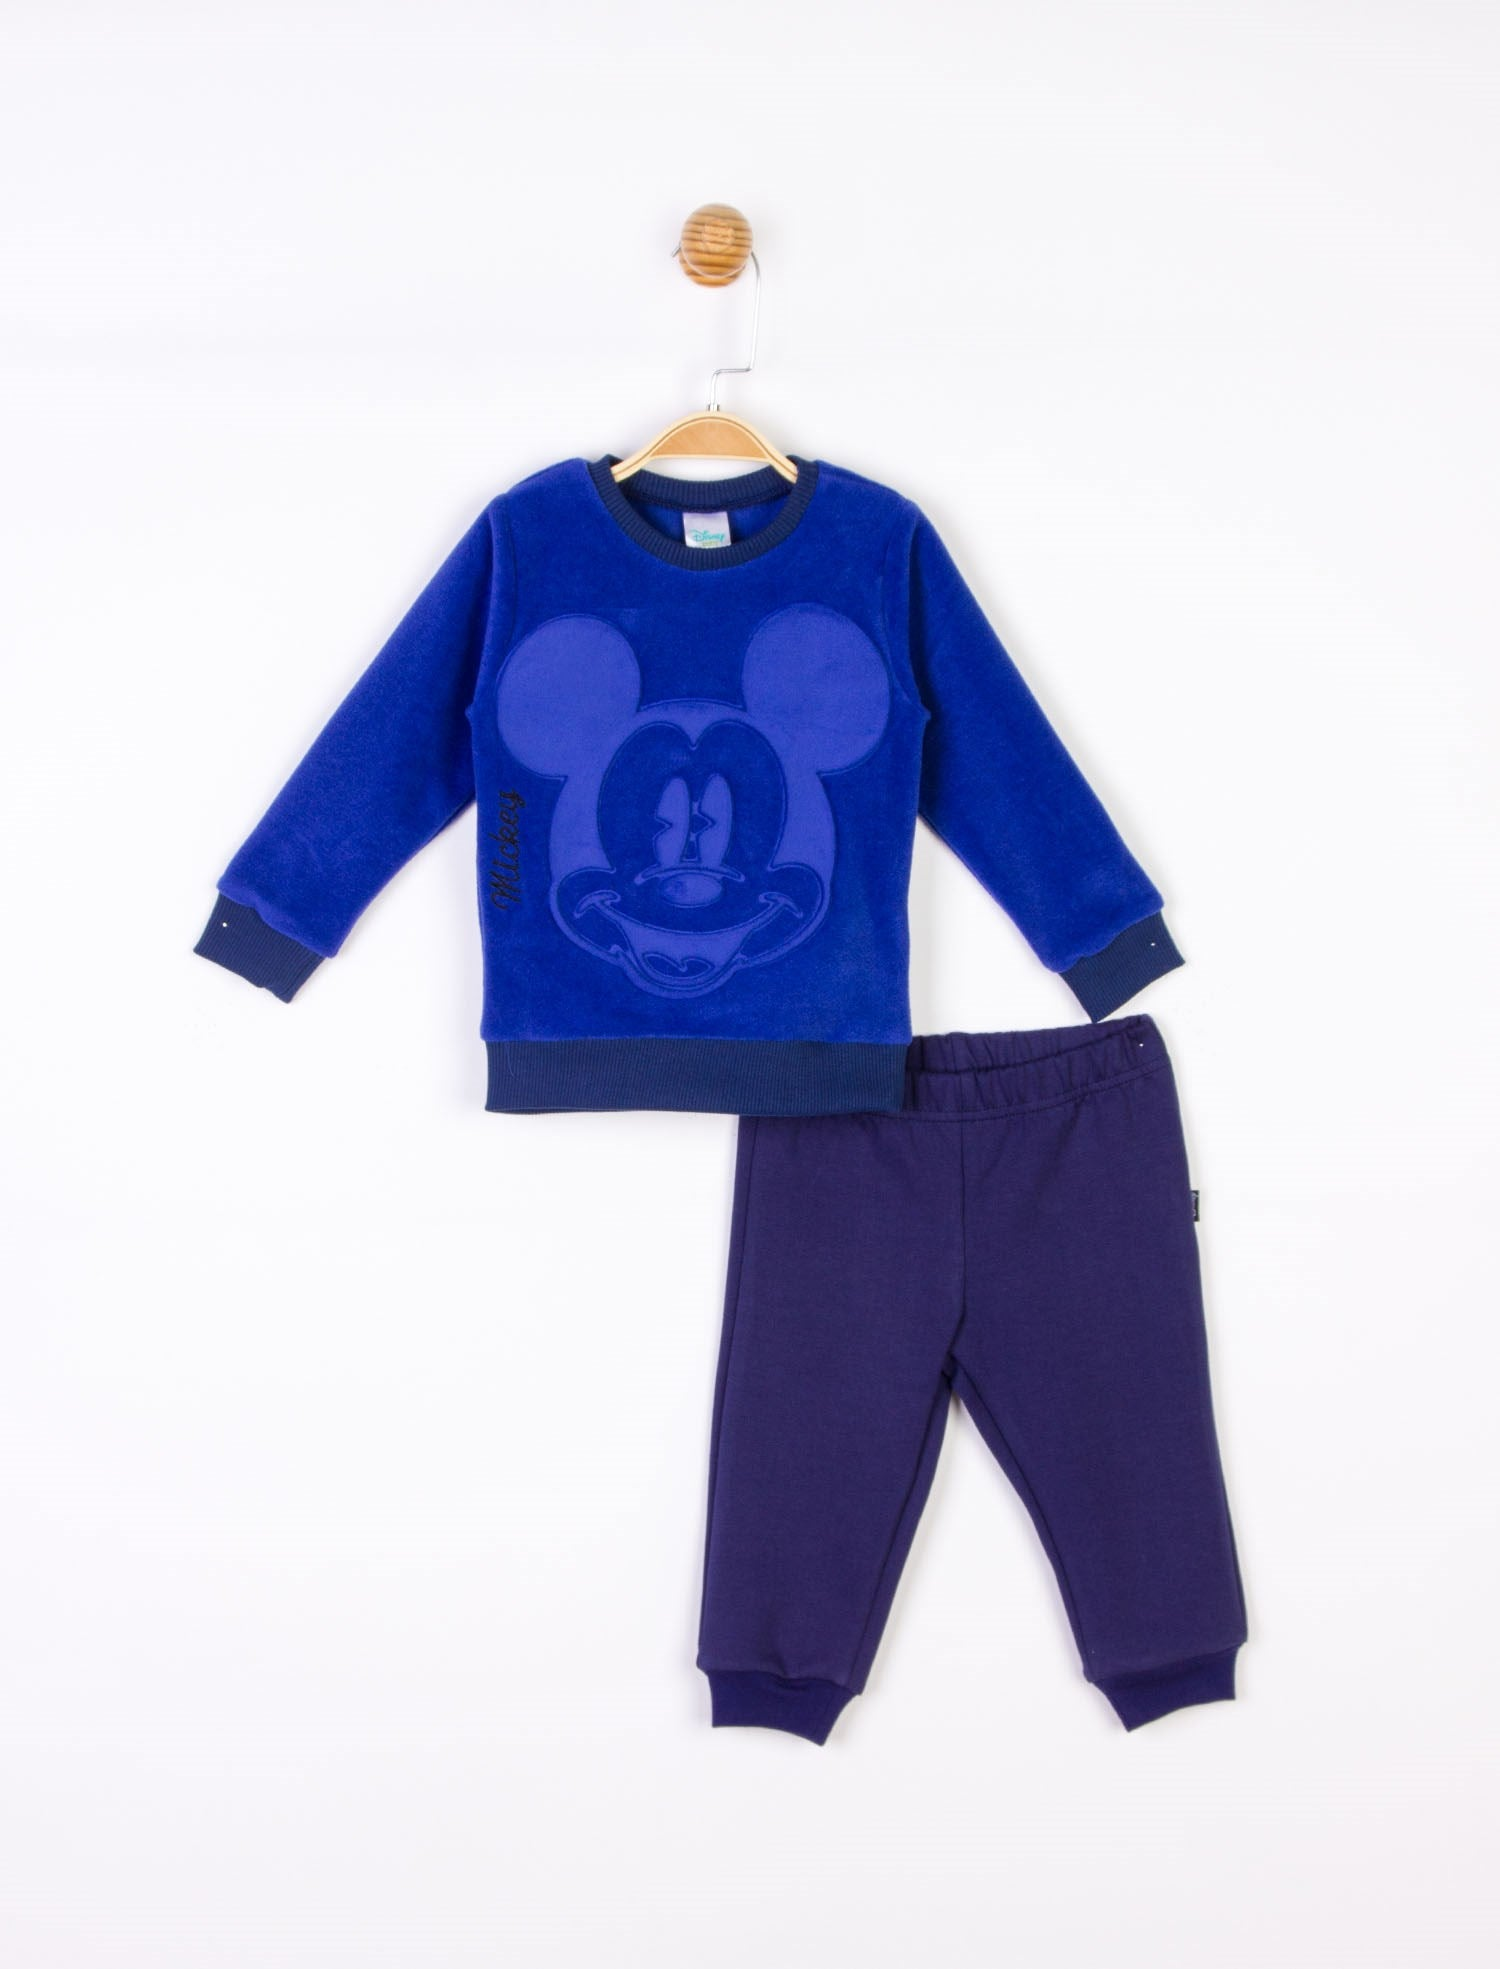 Baby Boy's Mickey Design Polar Outfit - 2 Pieces